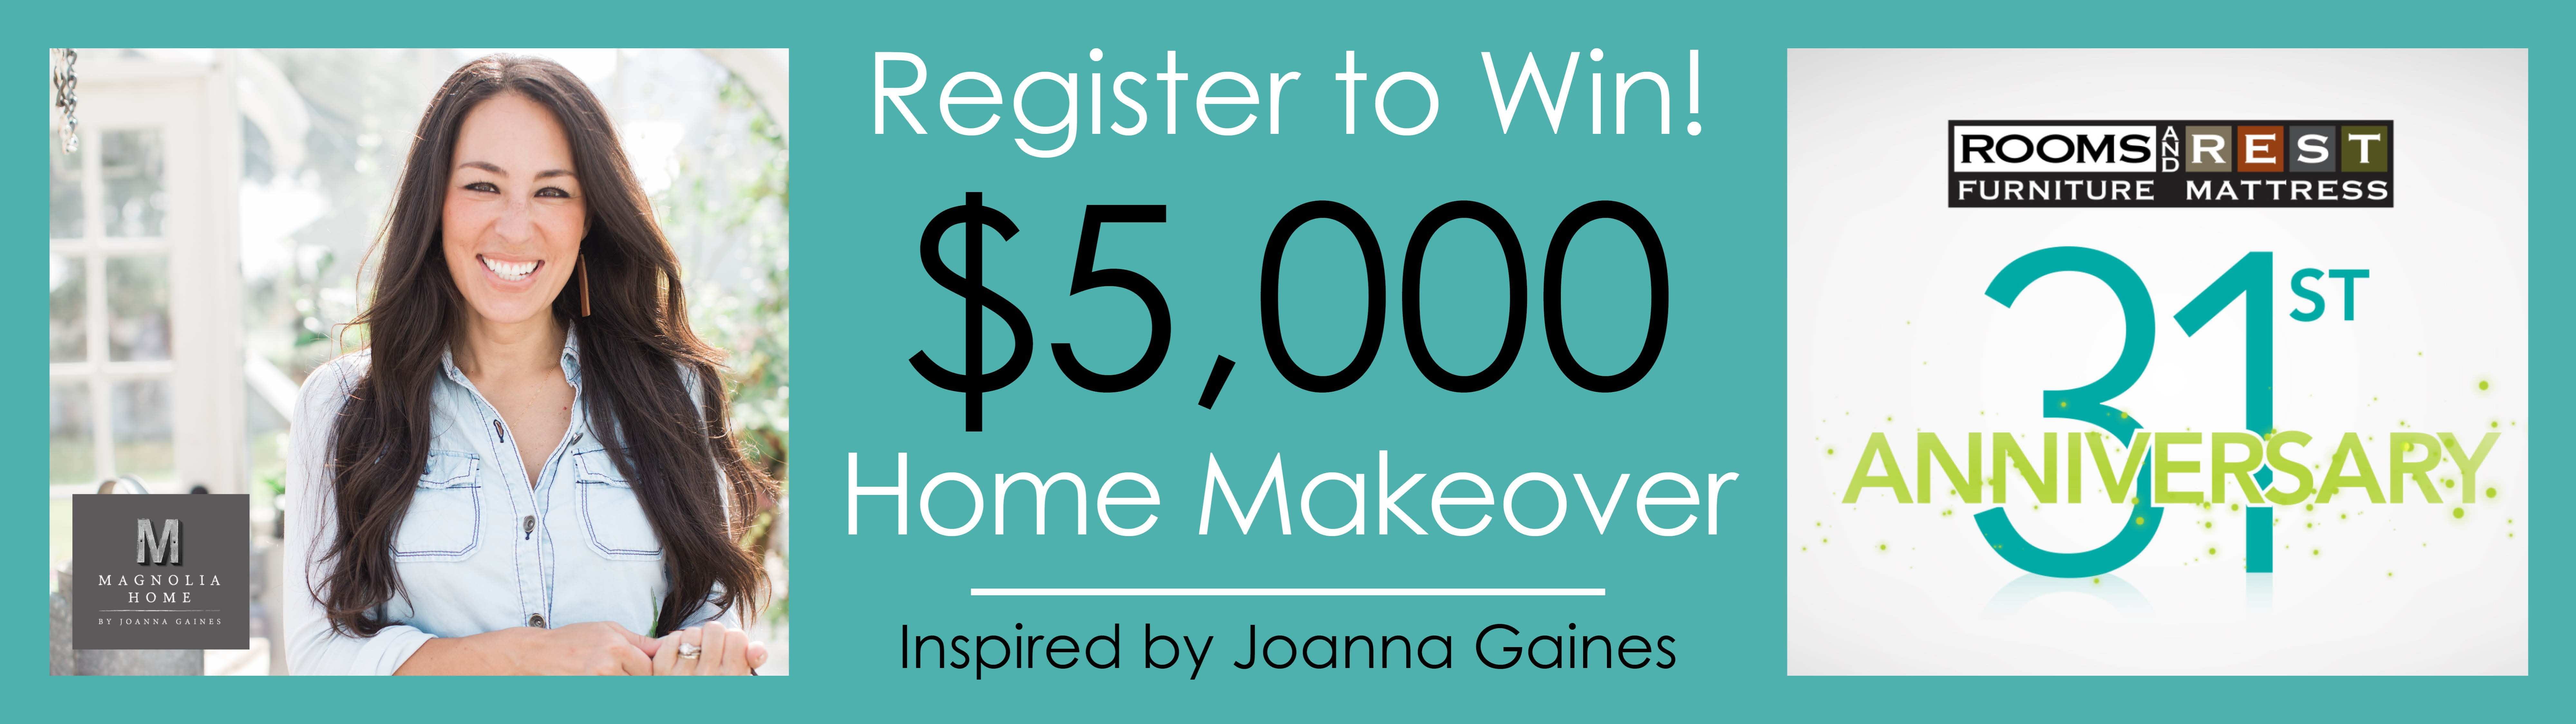 Giveaway, Makeover, Furniture, Magnolia, Joanna Gaines, Rooms and Rest